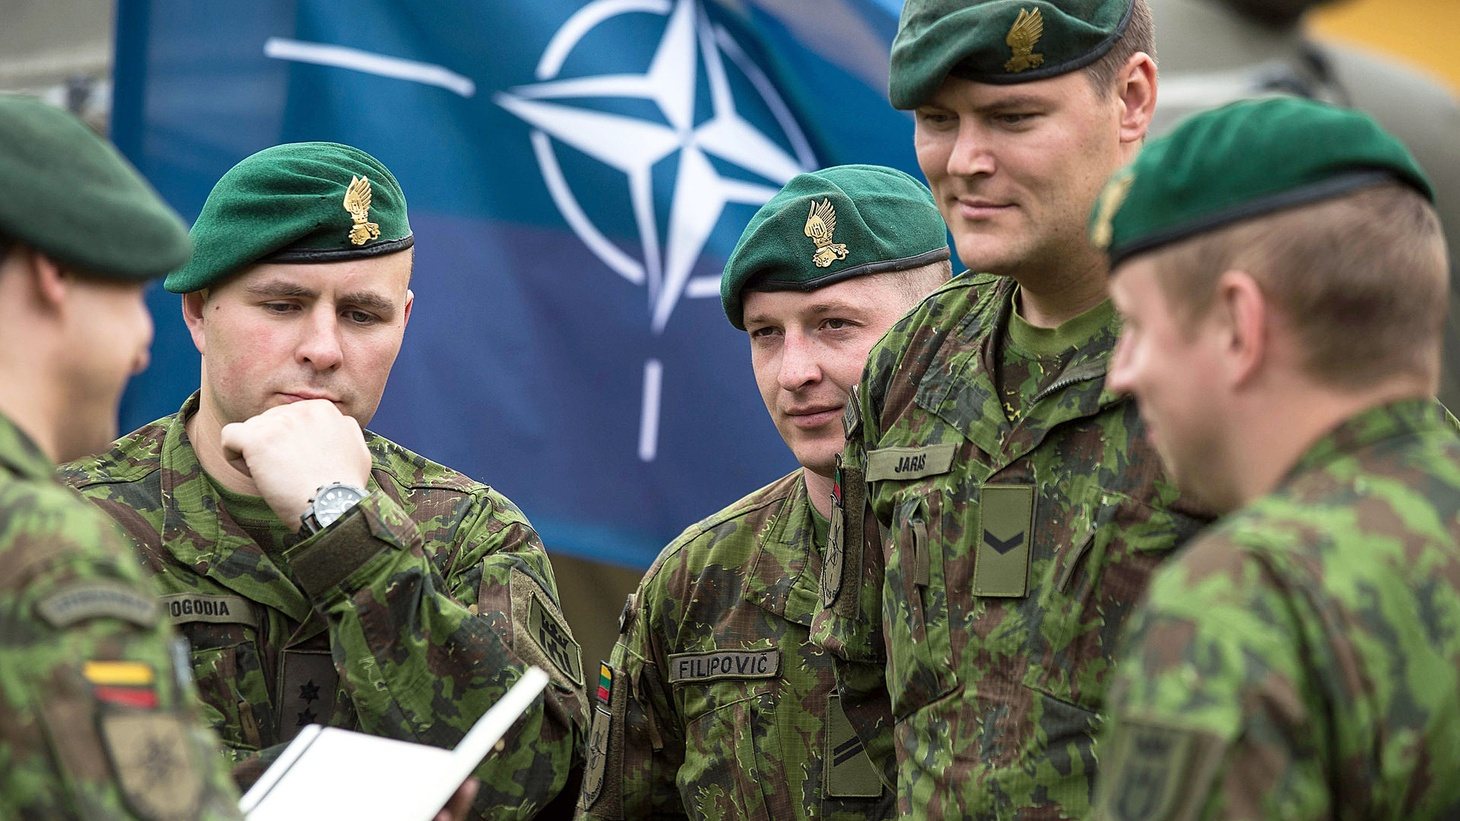 Two decades after the Cold War, tensions are on the increase between the NATO Alliance and Russia. NATO's planning a military buildup in Eastern Europe mostly at US expense. We hear why and get Russia's reaction.